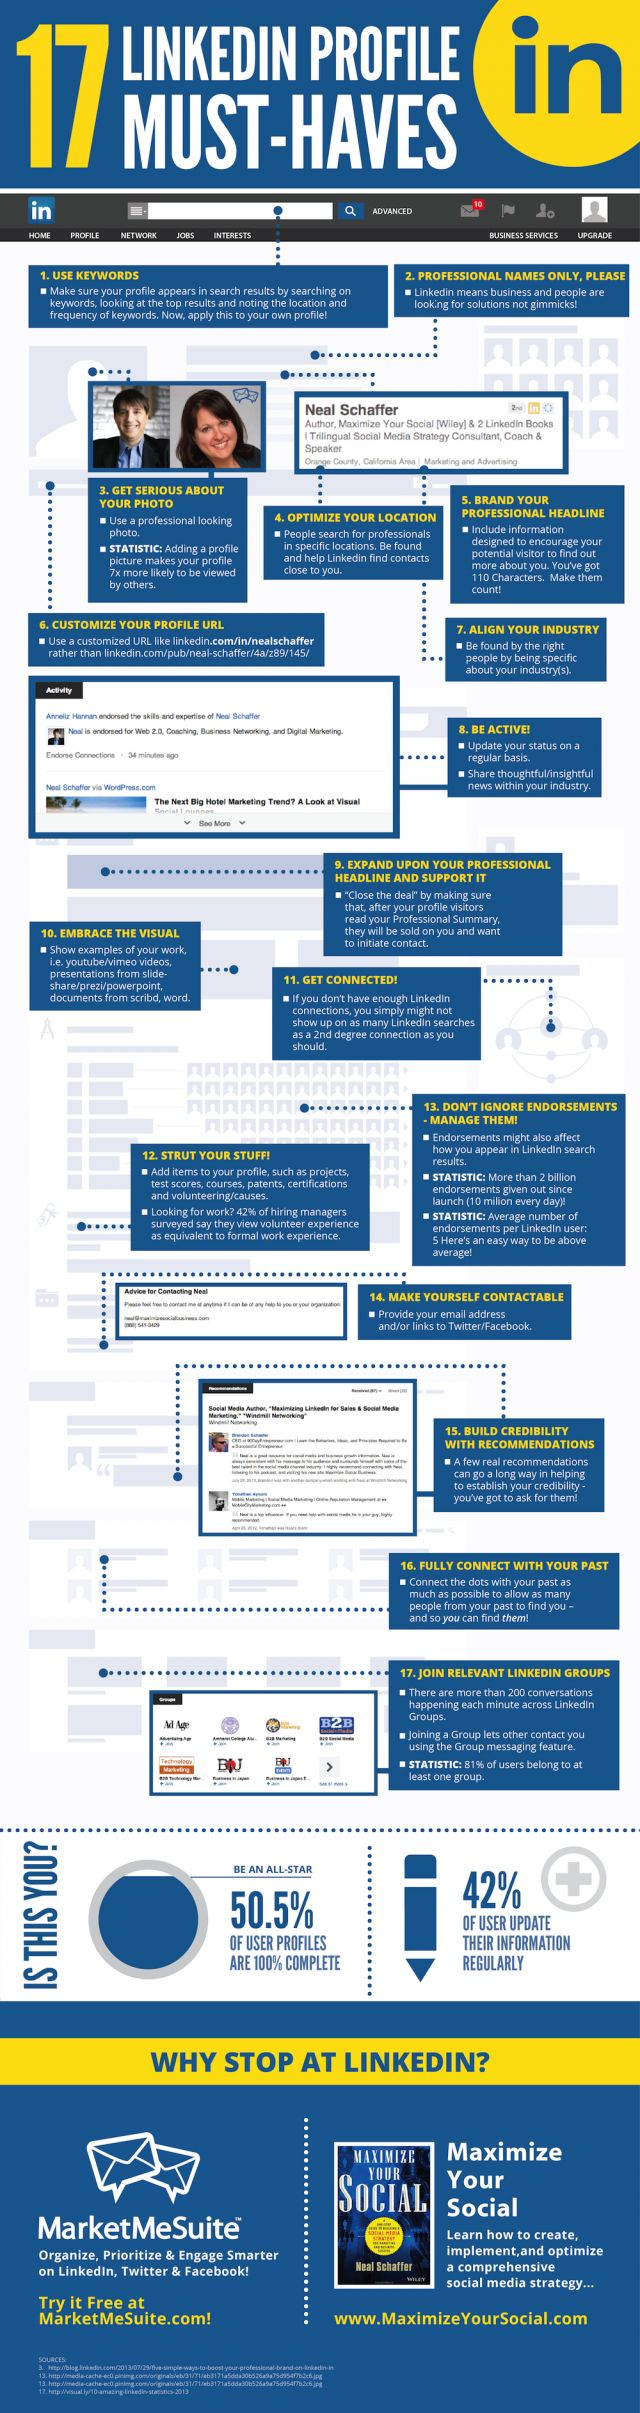 LinkedIn-Perfect-Profile-Tips-Summary-Infographic-1 The 17 things you want to have on your LinkedIn profile